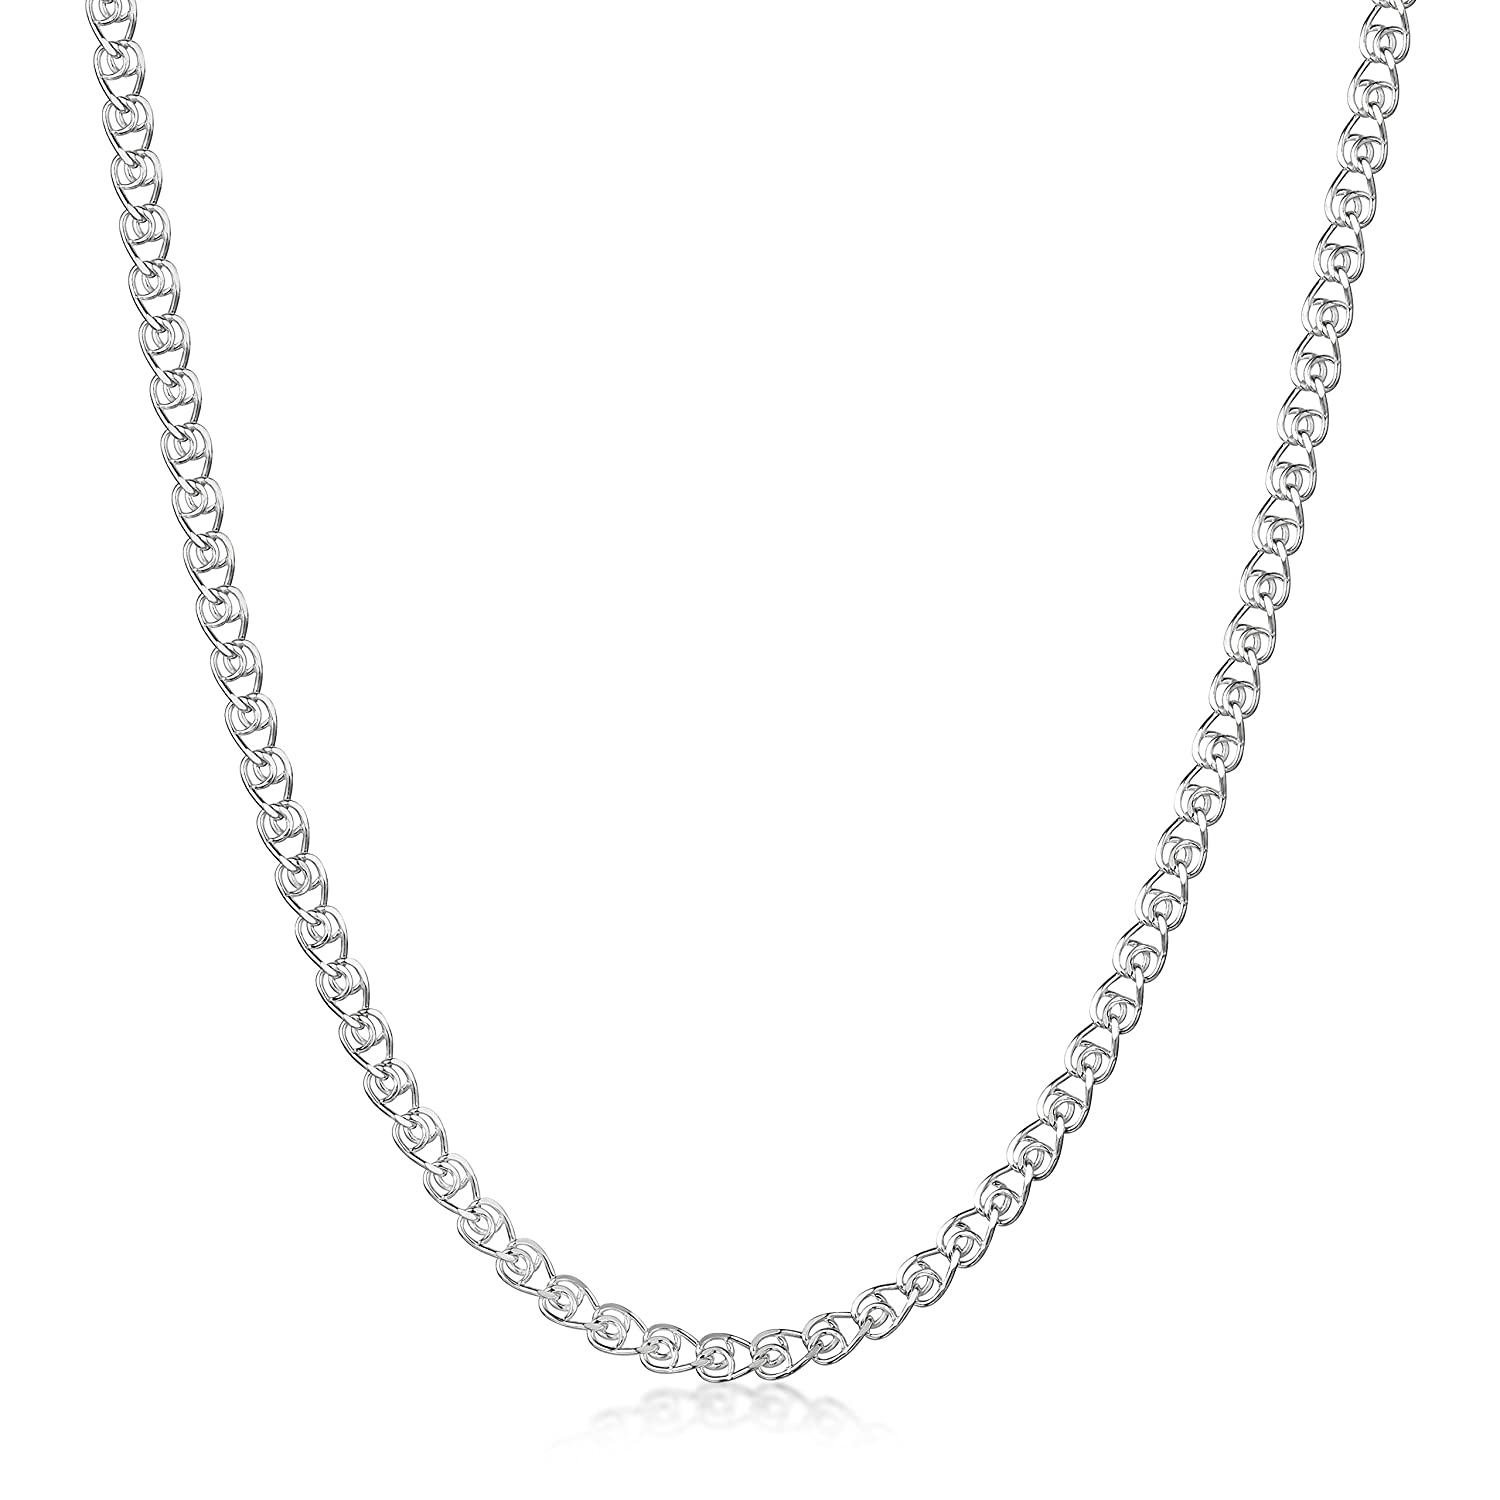 16 18 20 22 24 inch Amberta 925 Sterling Silver 2.3 mm Heart Chain Size